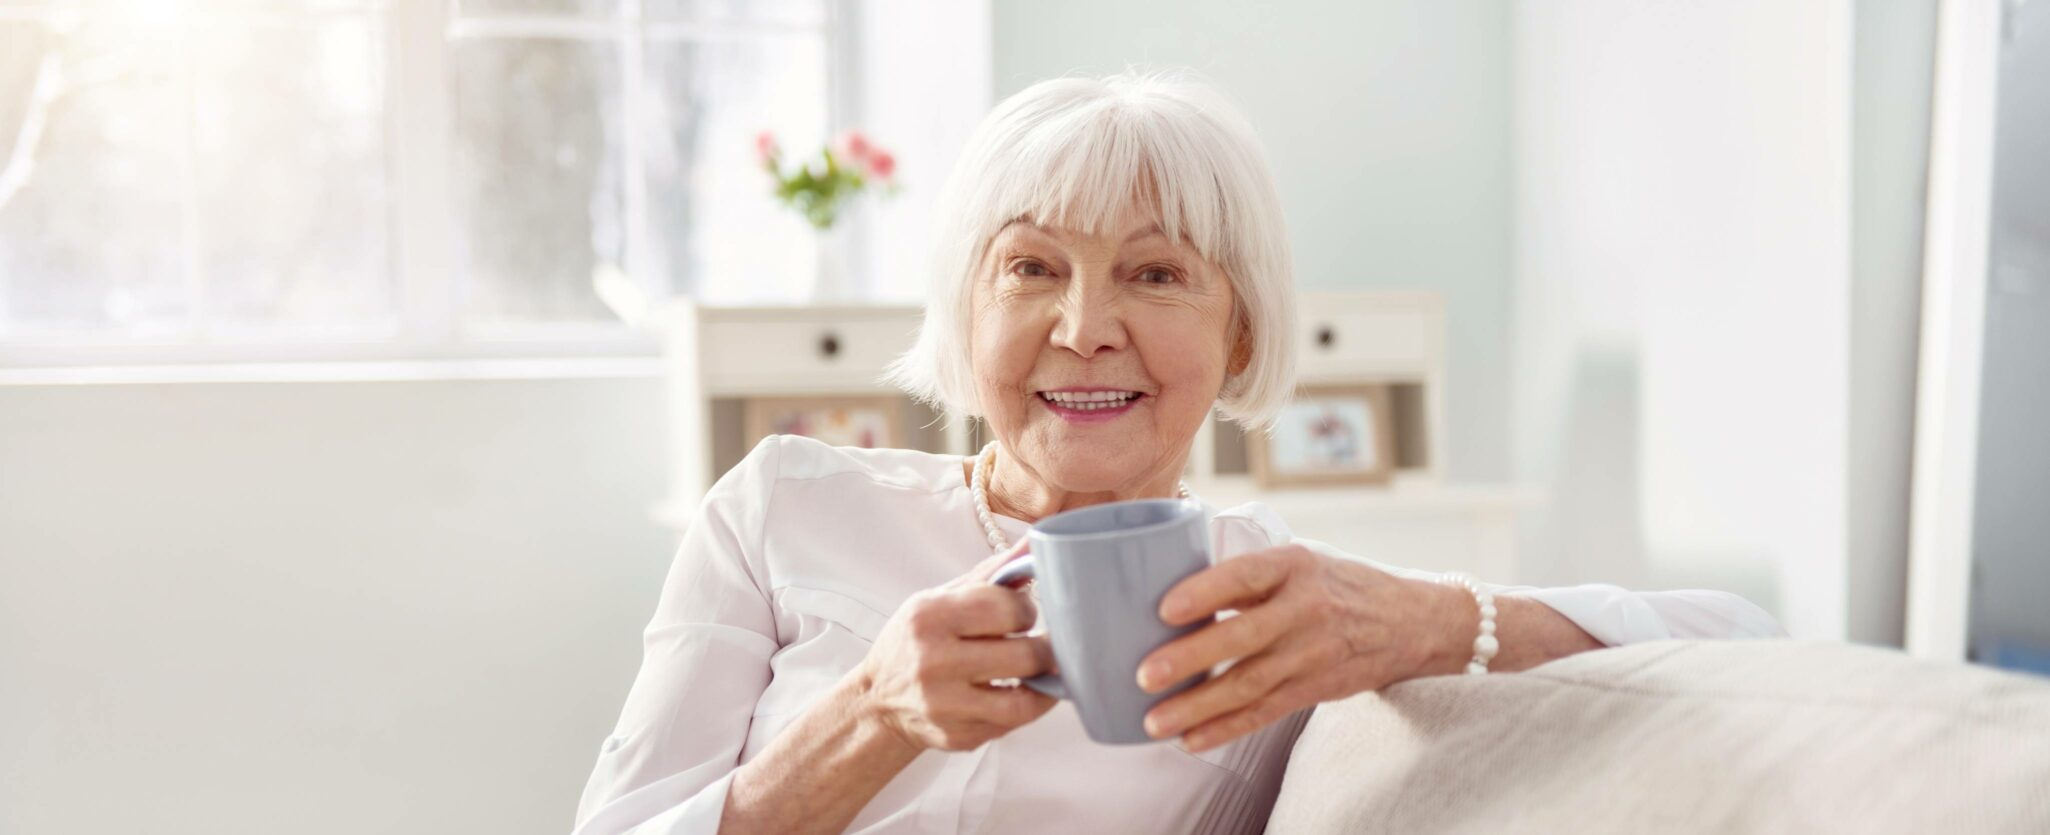 senior lady relaxing on a couch while drinking coffee